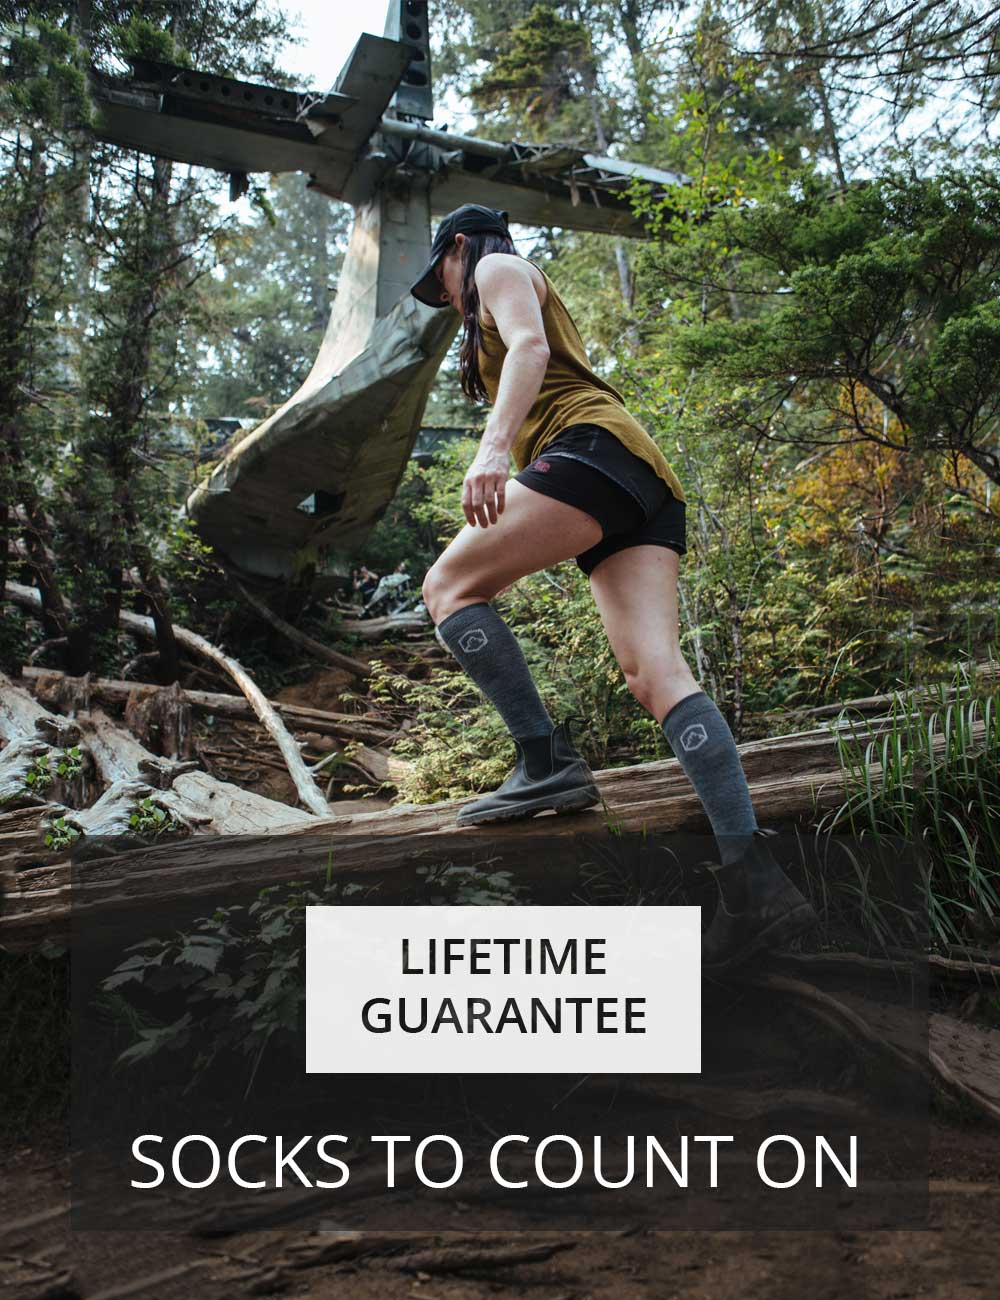 CloudLine socks are backed by our hassle-free lifetime guarantee.